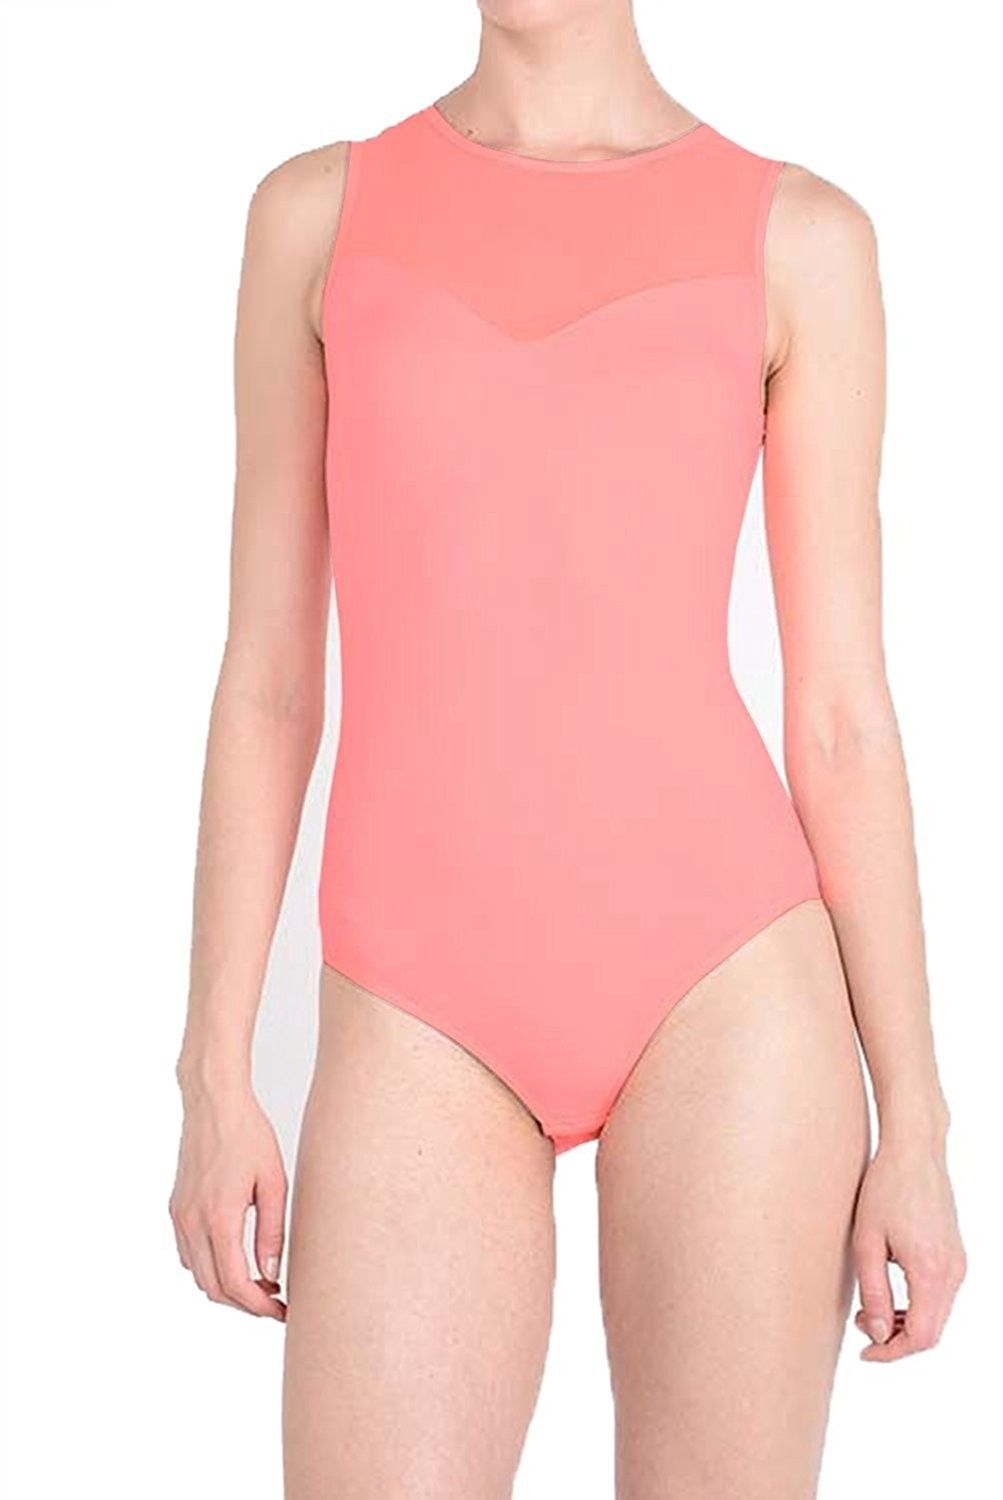 24716ccba13 Women's Clothing, Swimsuits & Cover Ups, One-Pieces, Tough Cookie's Women's Sleeveless  Mesh-back Sweetheart Leotard BodySuit - Neon Pink - C812GXTHZ65 ...